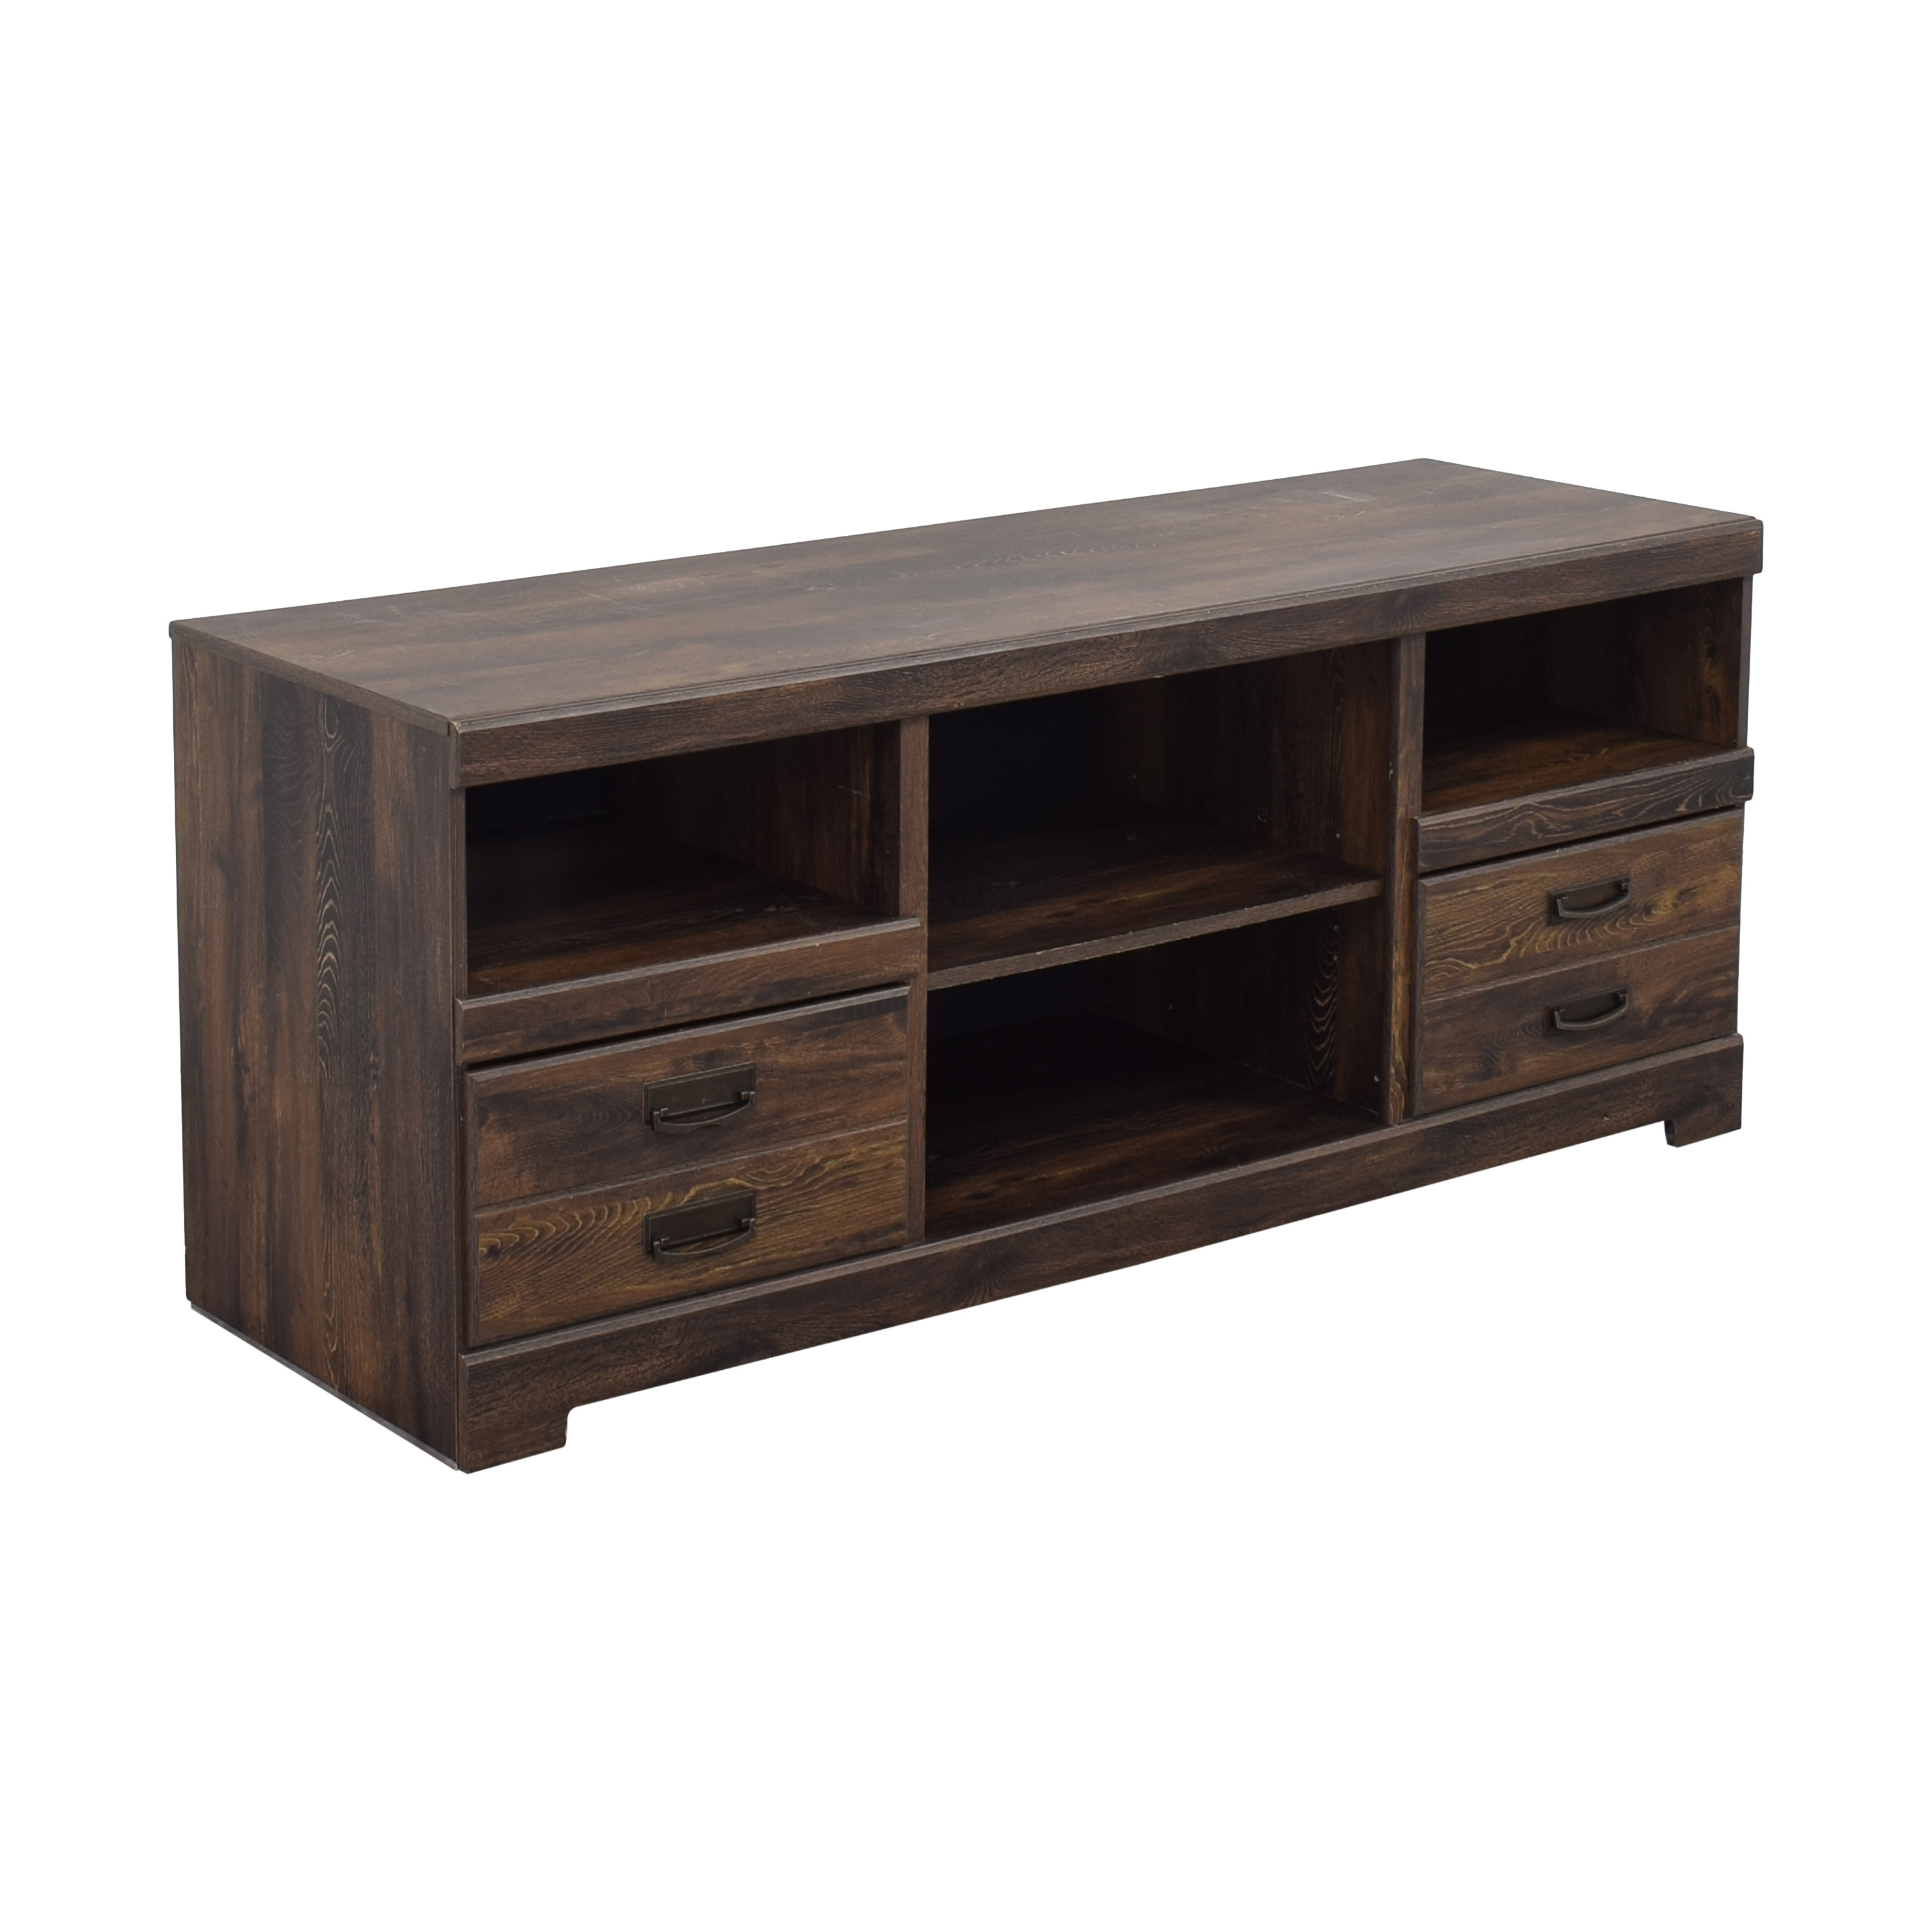 Ashley Furniture Ashley Furniture Media Console with Two Drawers used